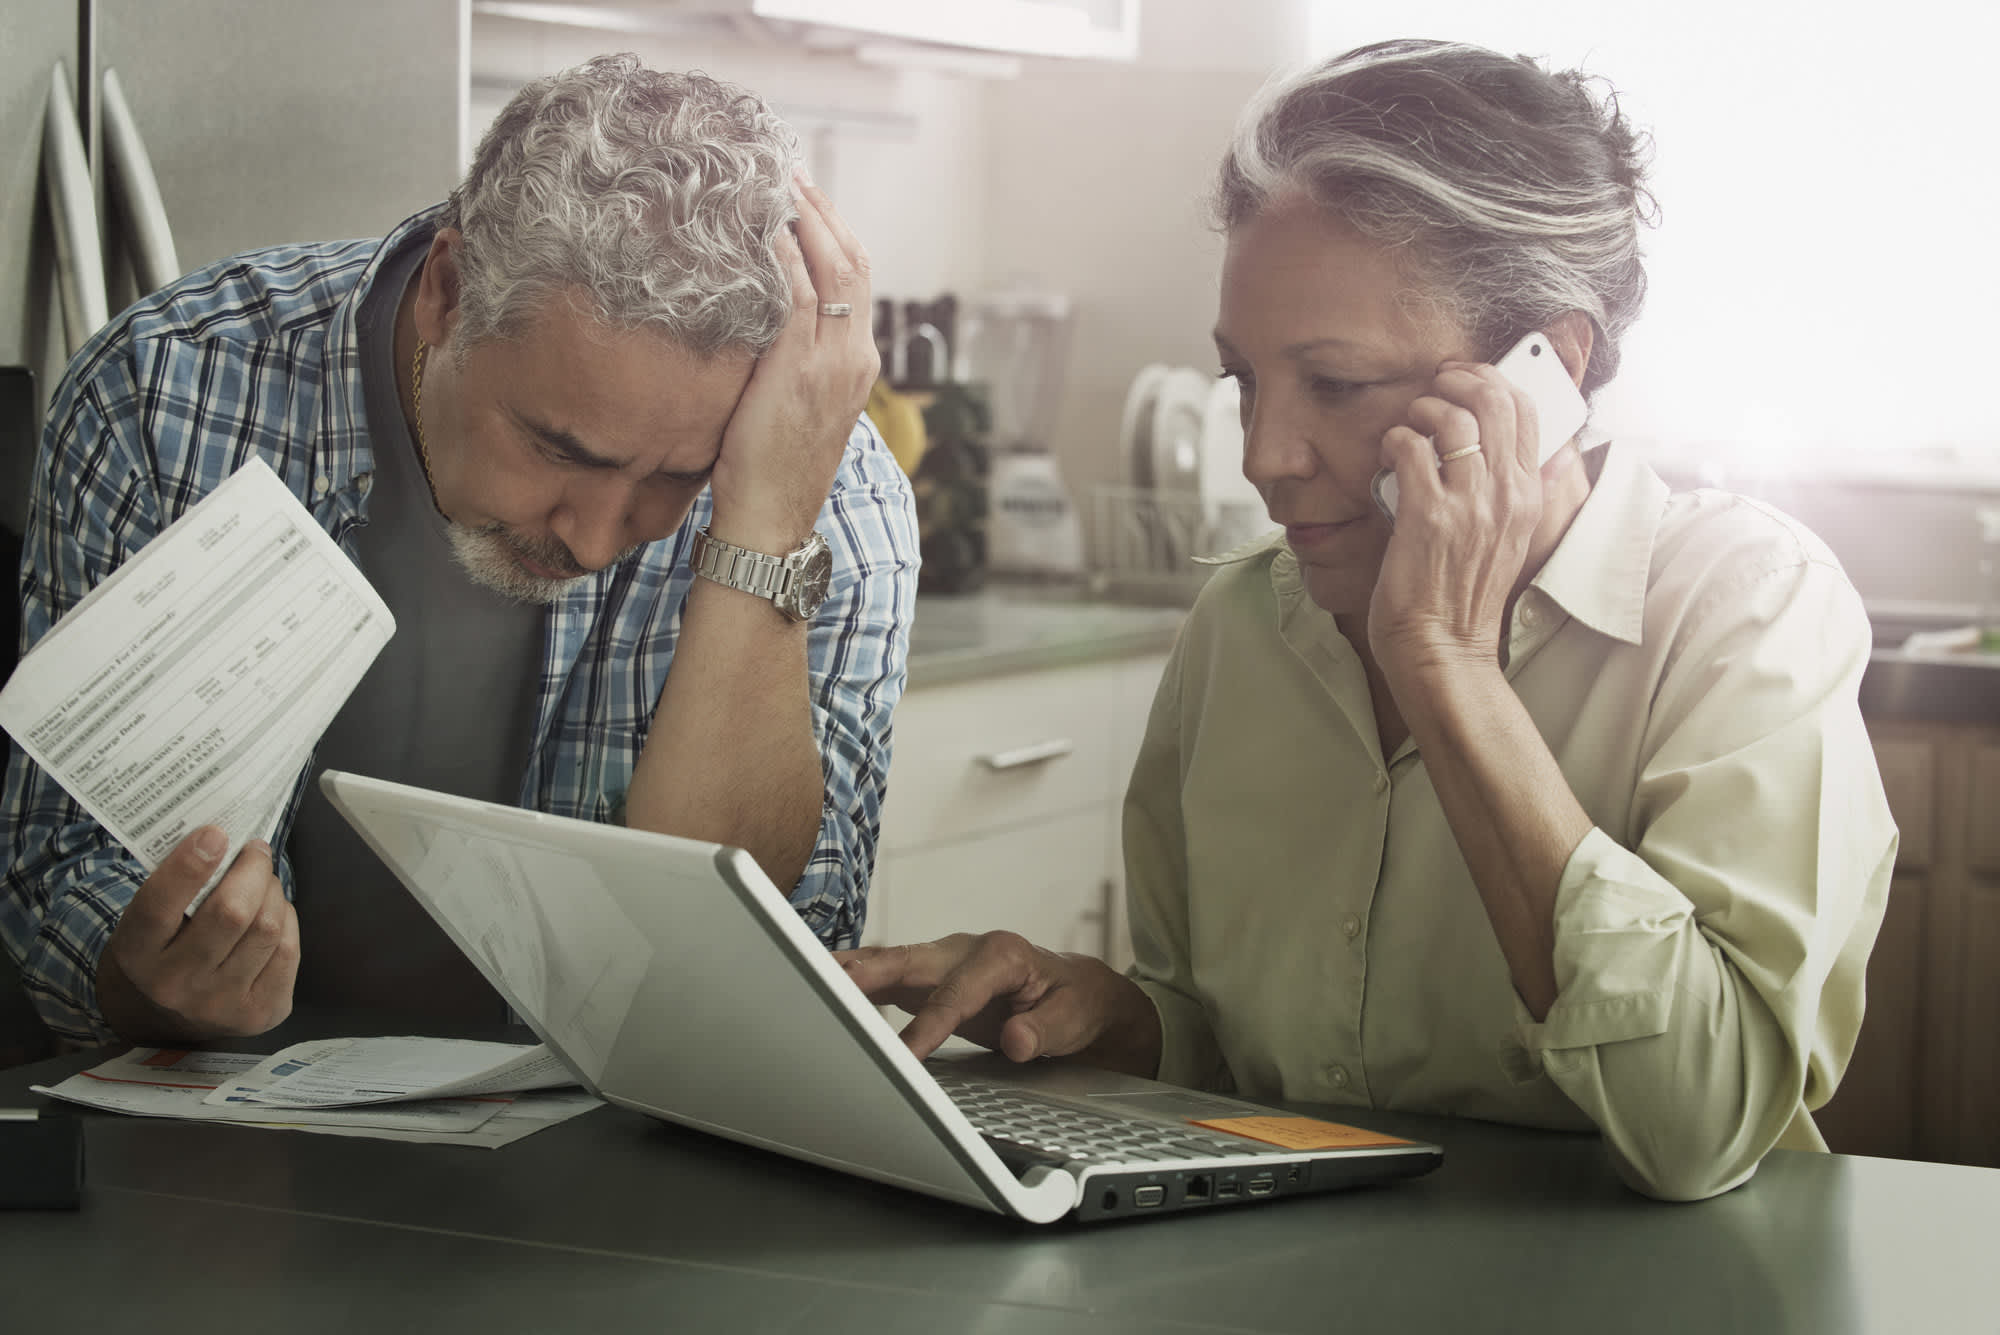 Here's when unpaid debt can reduce your Social Security payments